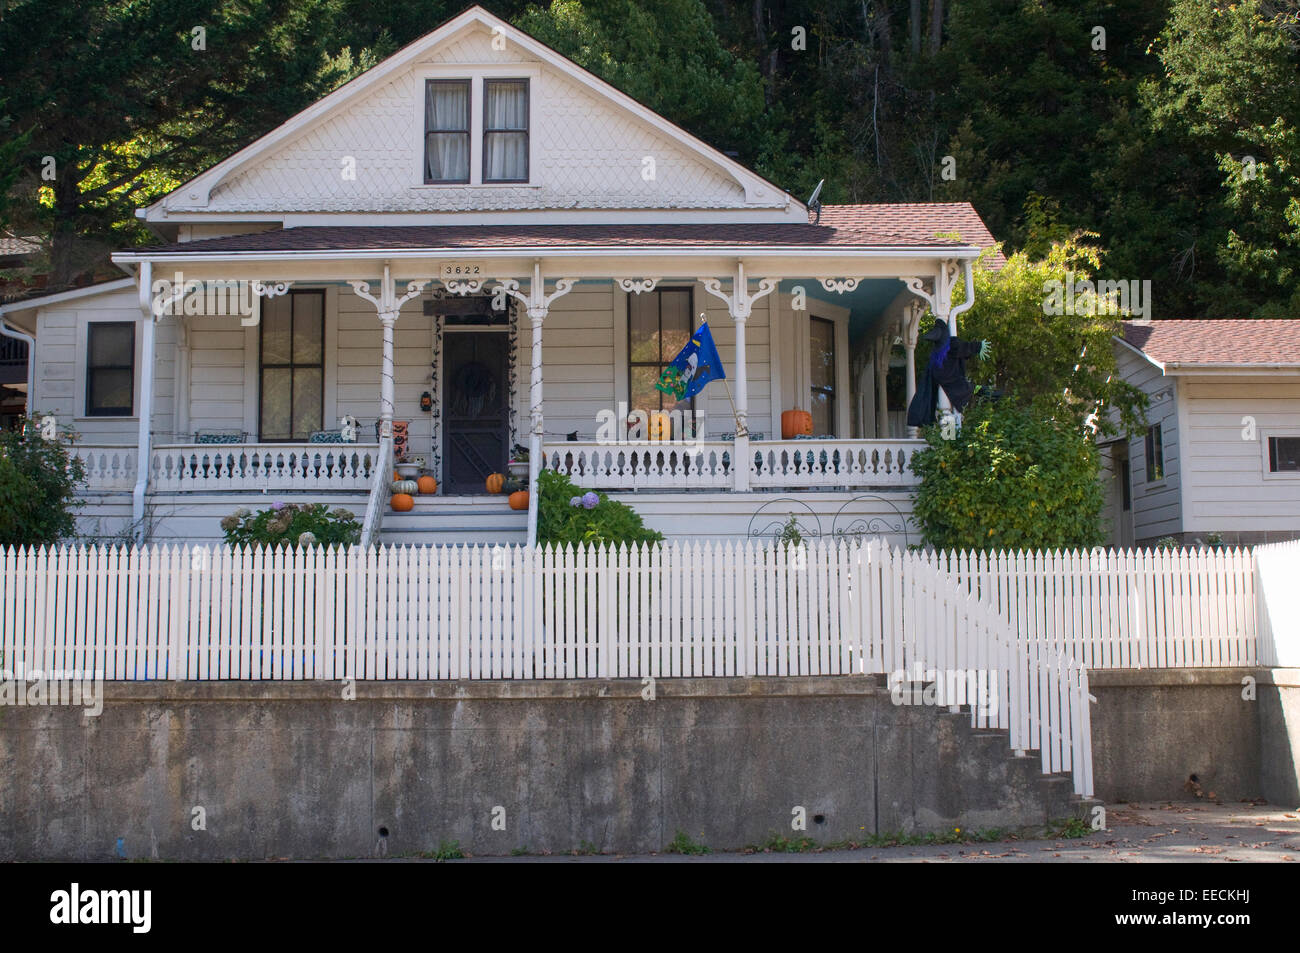 quaint wooden white picket fence house in occidental northern stock photo royalty free image. Black Bedroom Furniture Sets. Home Design Ideas